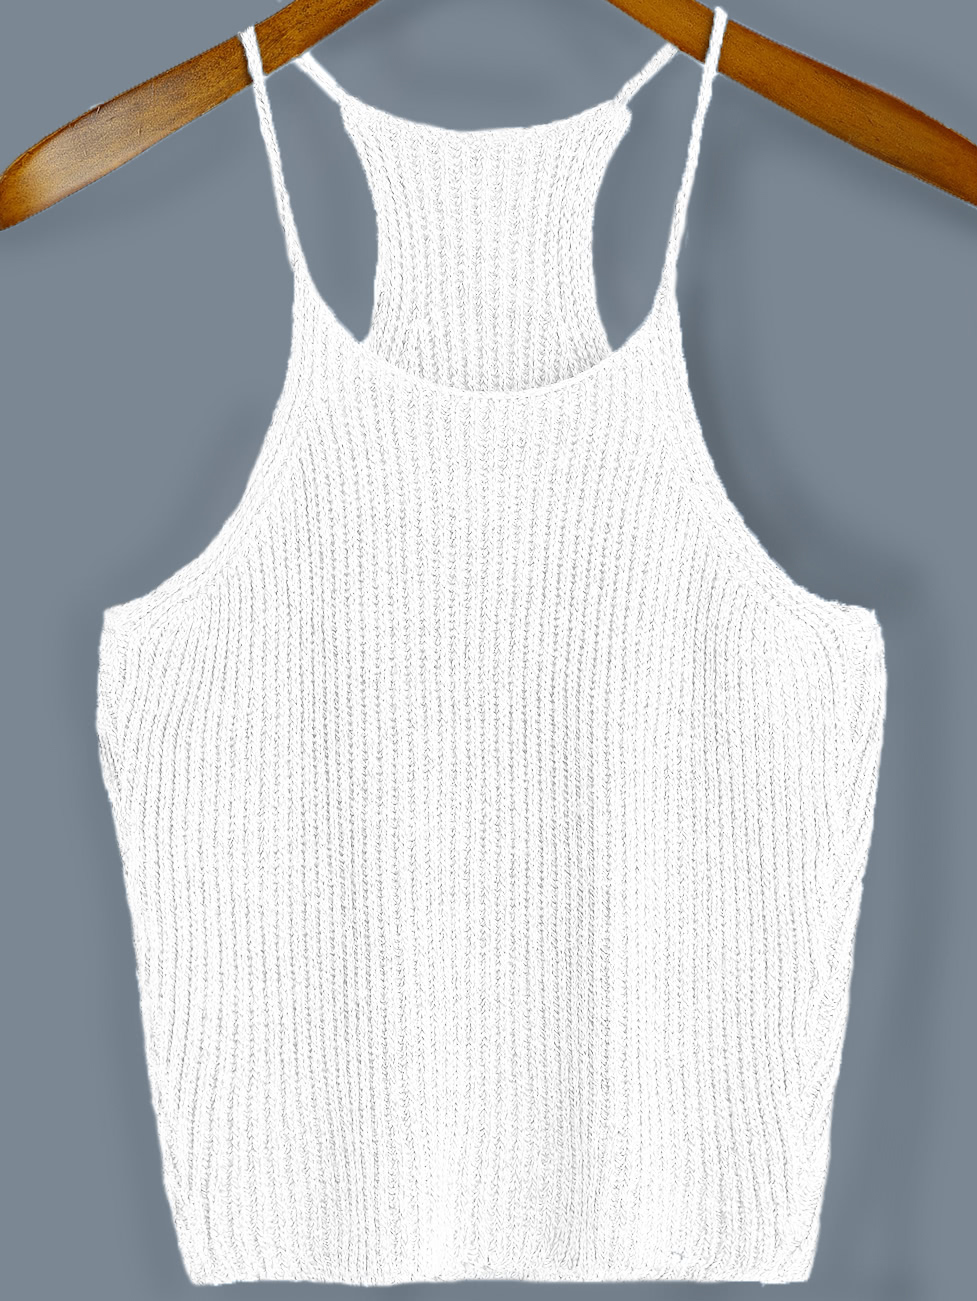 White Spaghetti Strap Sweater Cami Top vest151116150